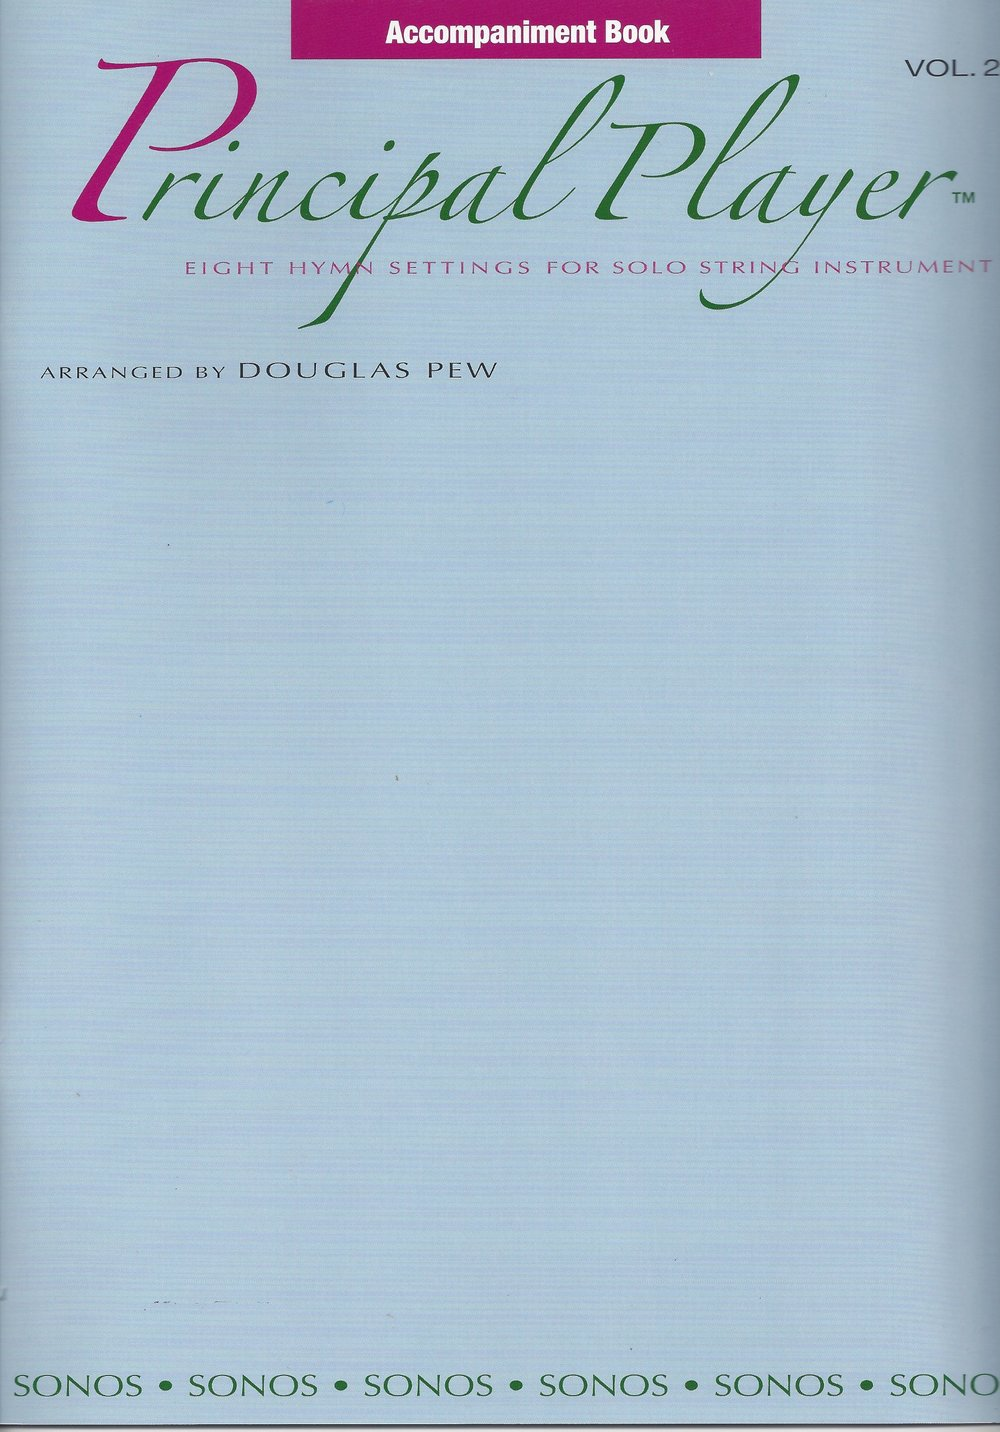 Principal Player, Vols. 1 & 2, for Solo String Instrument and Piano